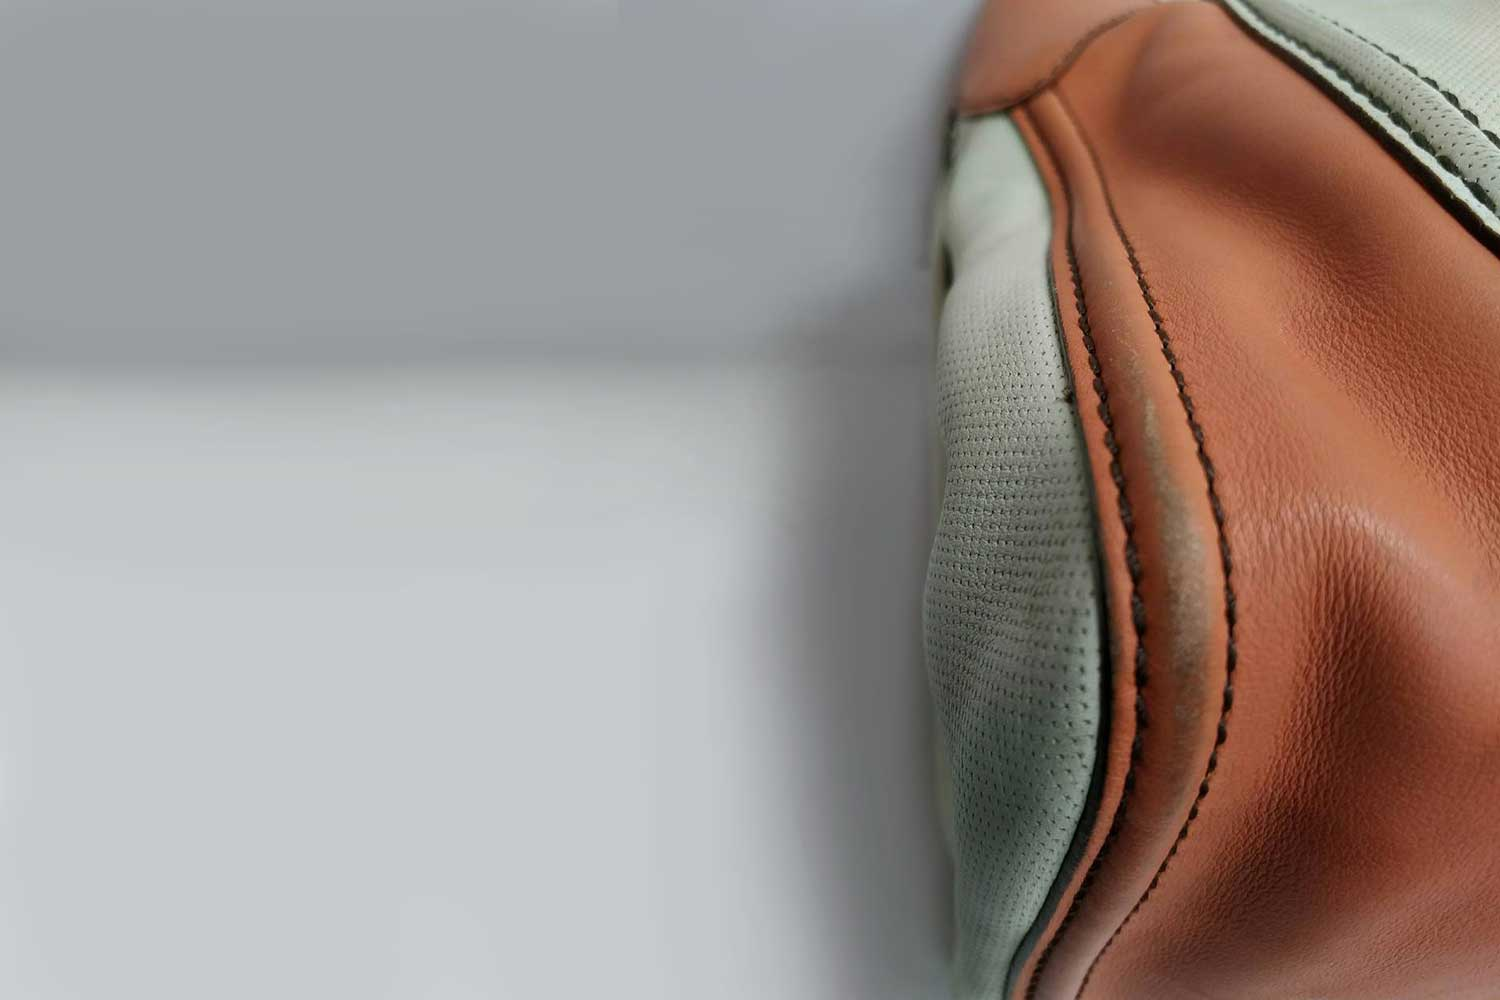 https://leather-pro.com/wp-content/uploads/2018/05/news_tods_bag_before_1500.jpg